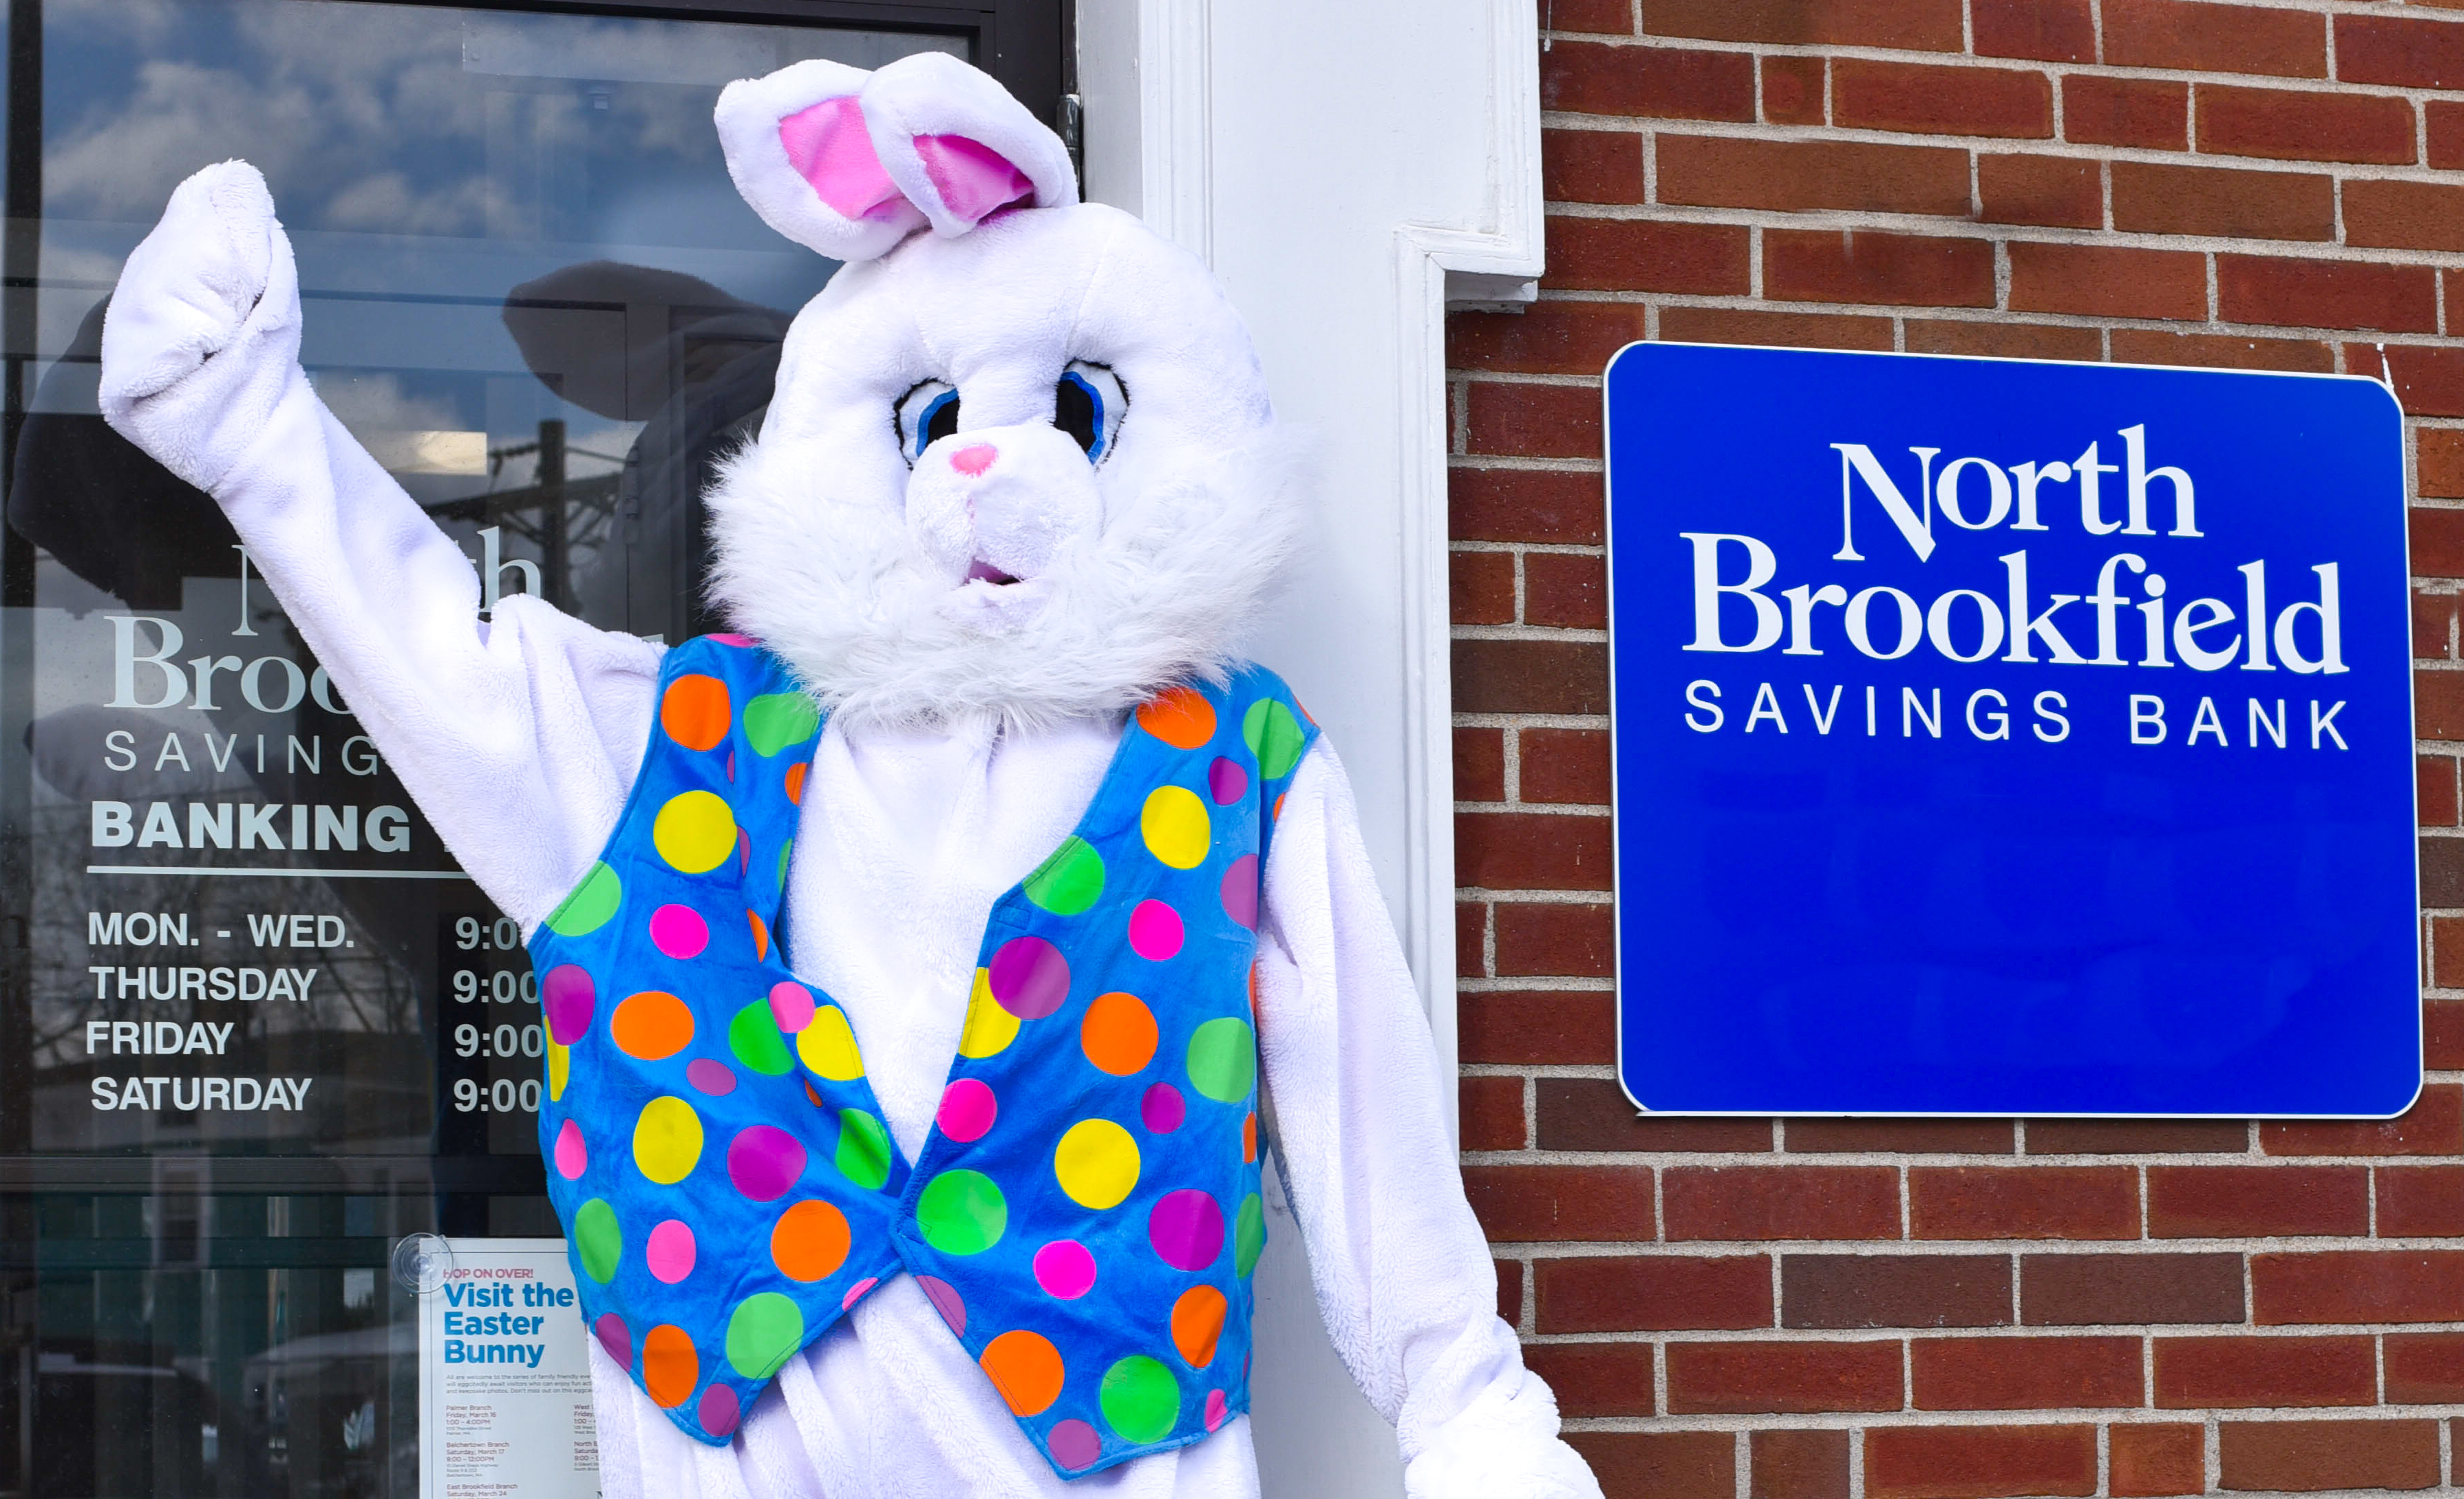 Bring your camera and have fun with the famous seasonal bunny at NBSB!